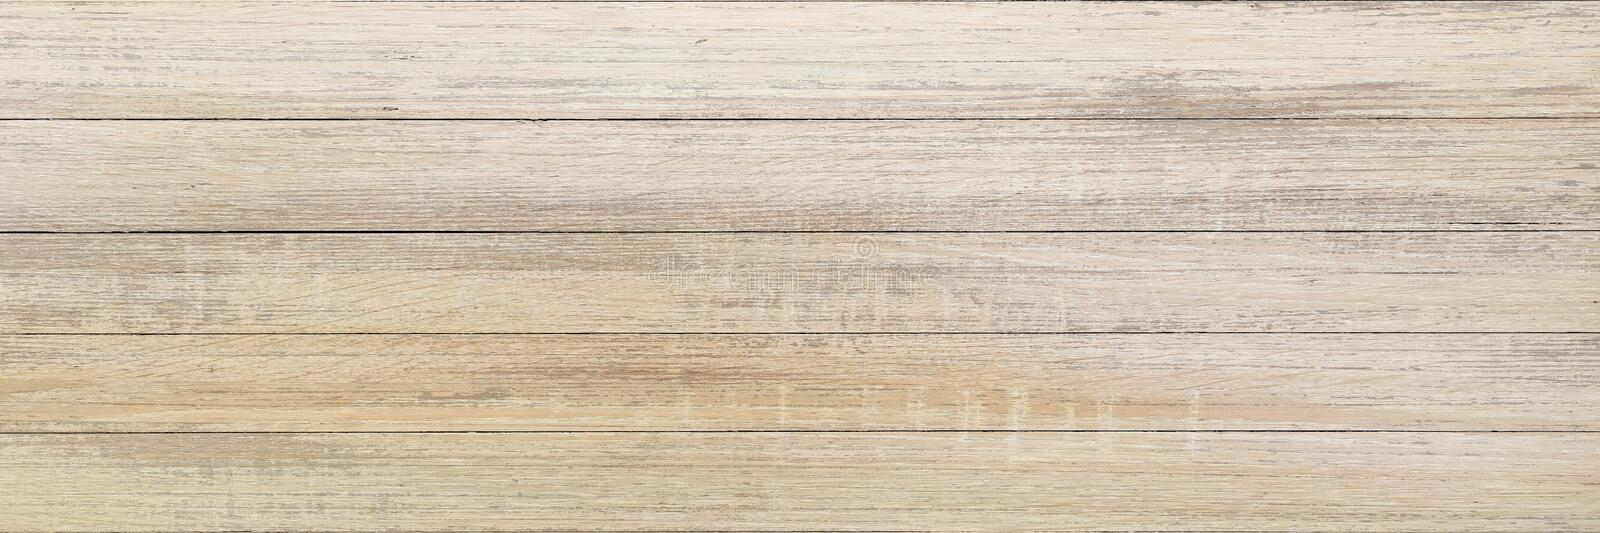 Washed wood texture, white wooden abstract background. Washed wood texture, white wooden background abstract royalty free stock photo